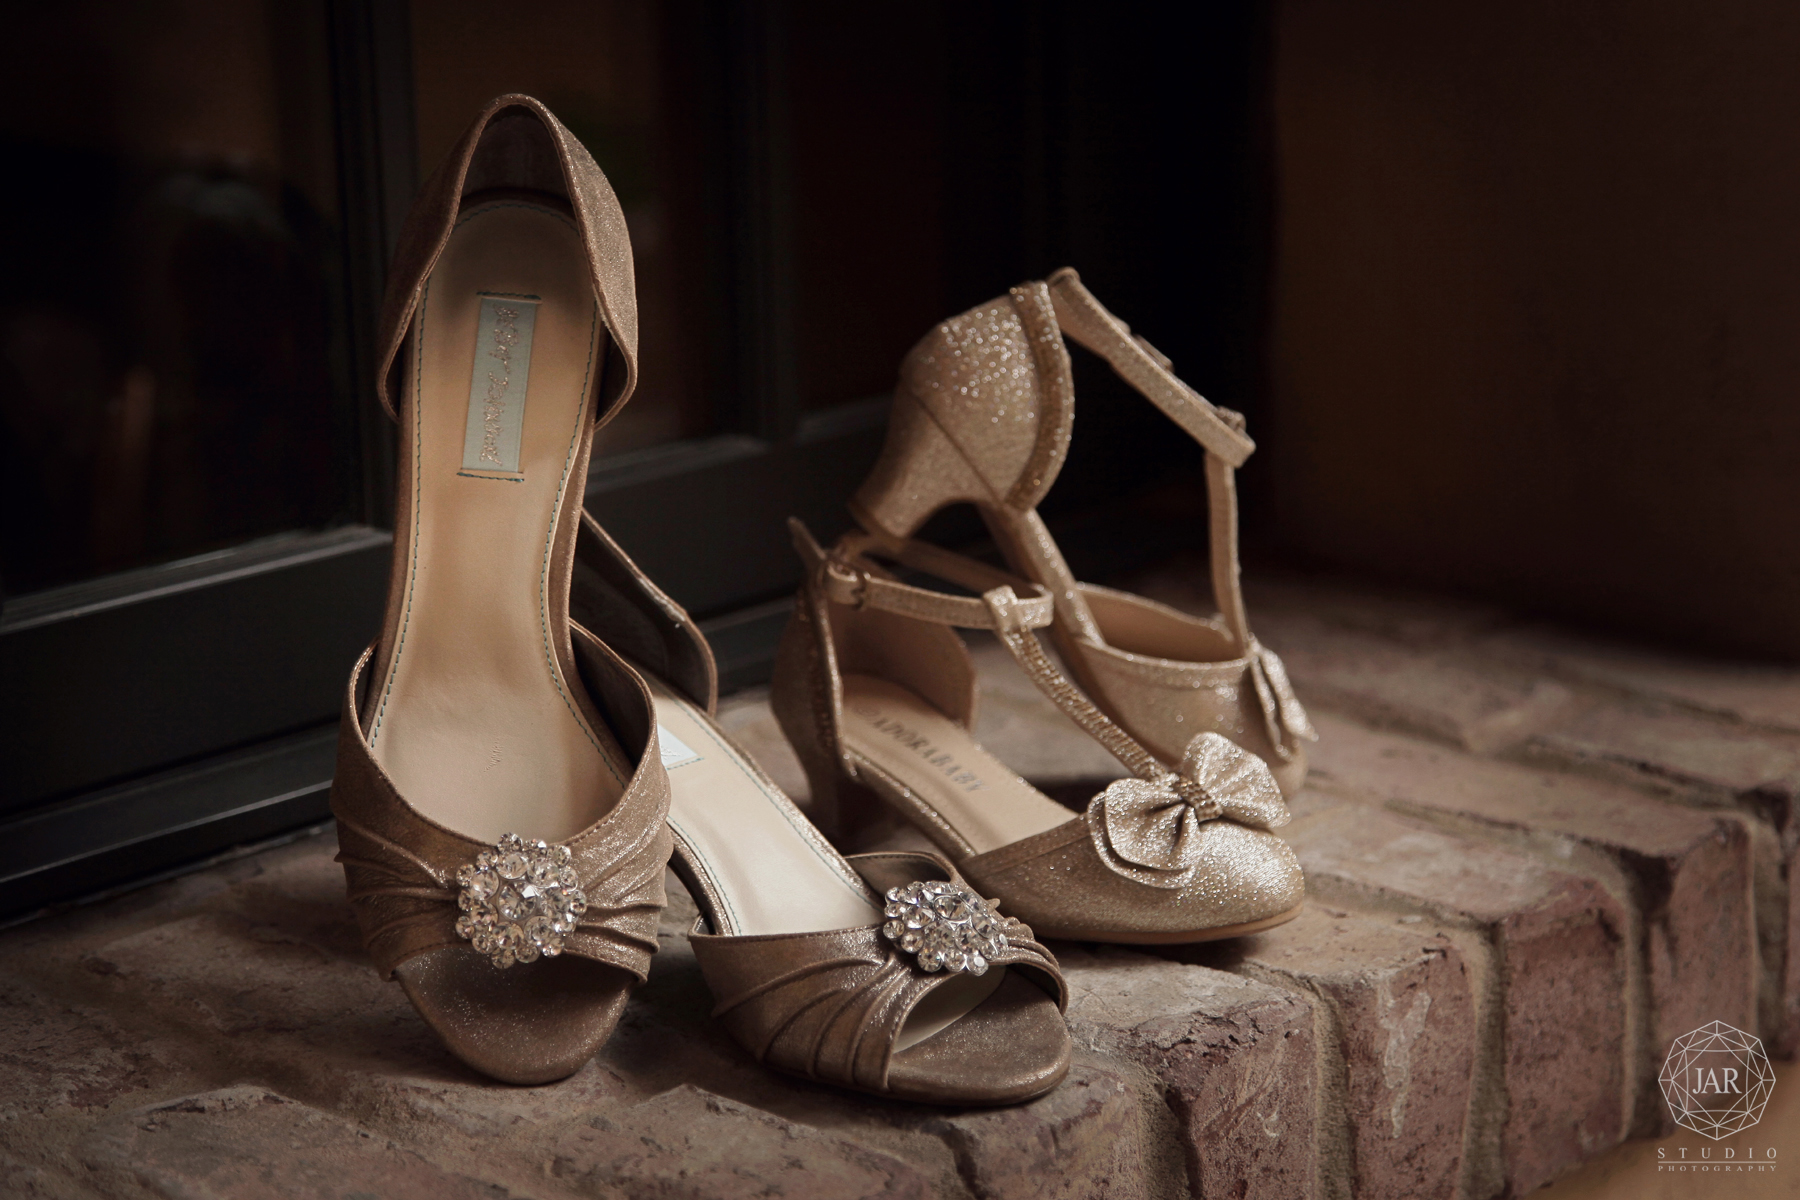 03-wedding-shoes-bella-collina-jarstudio-photography.jpg